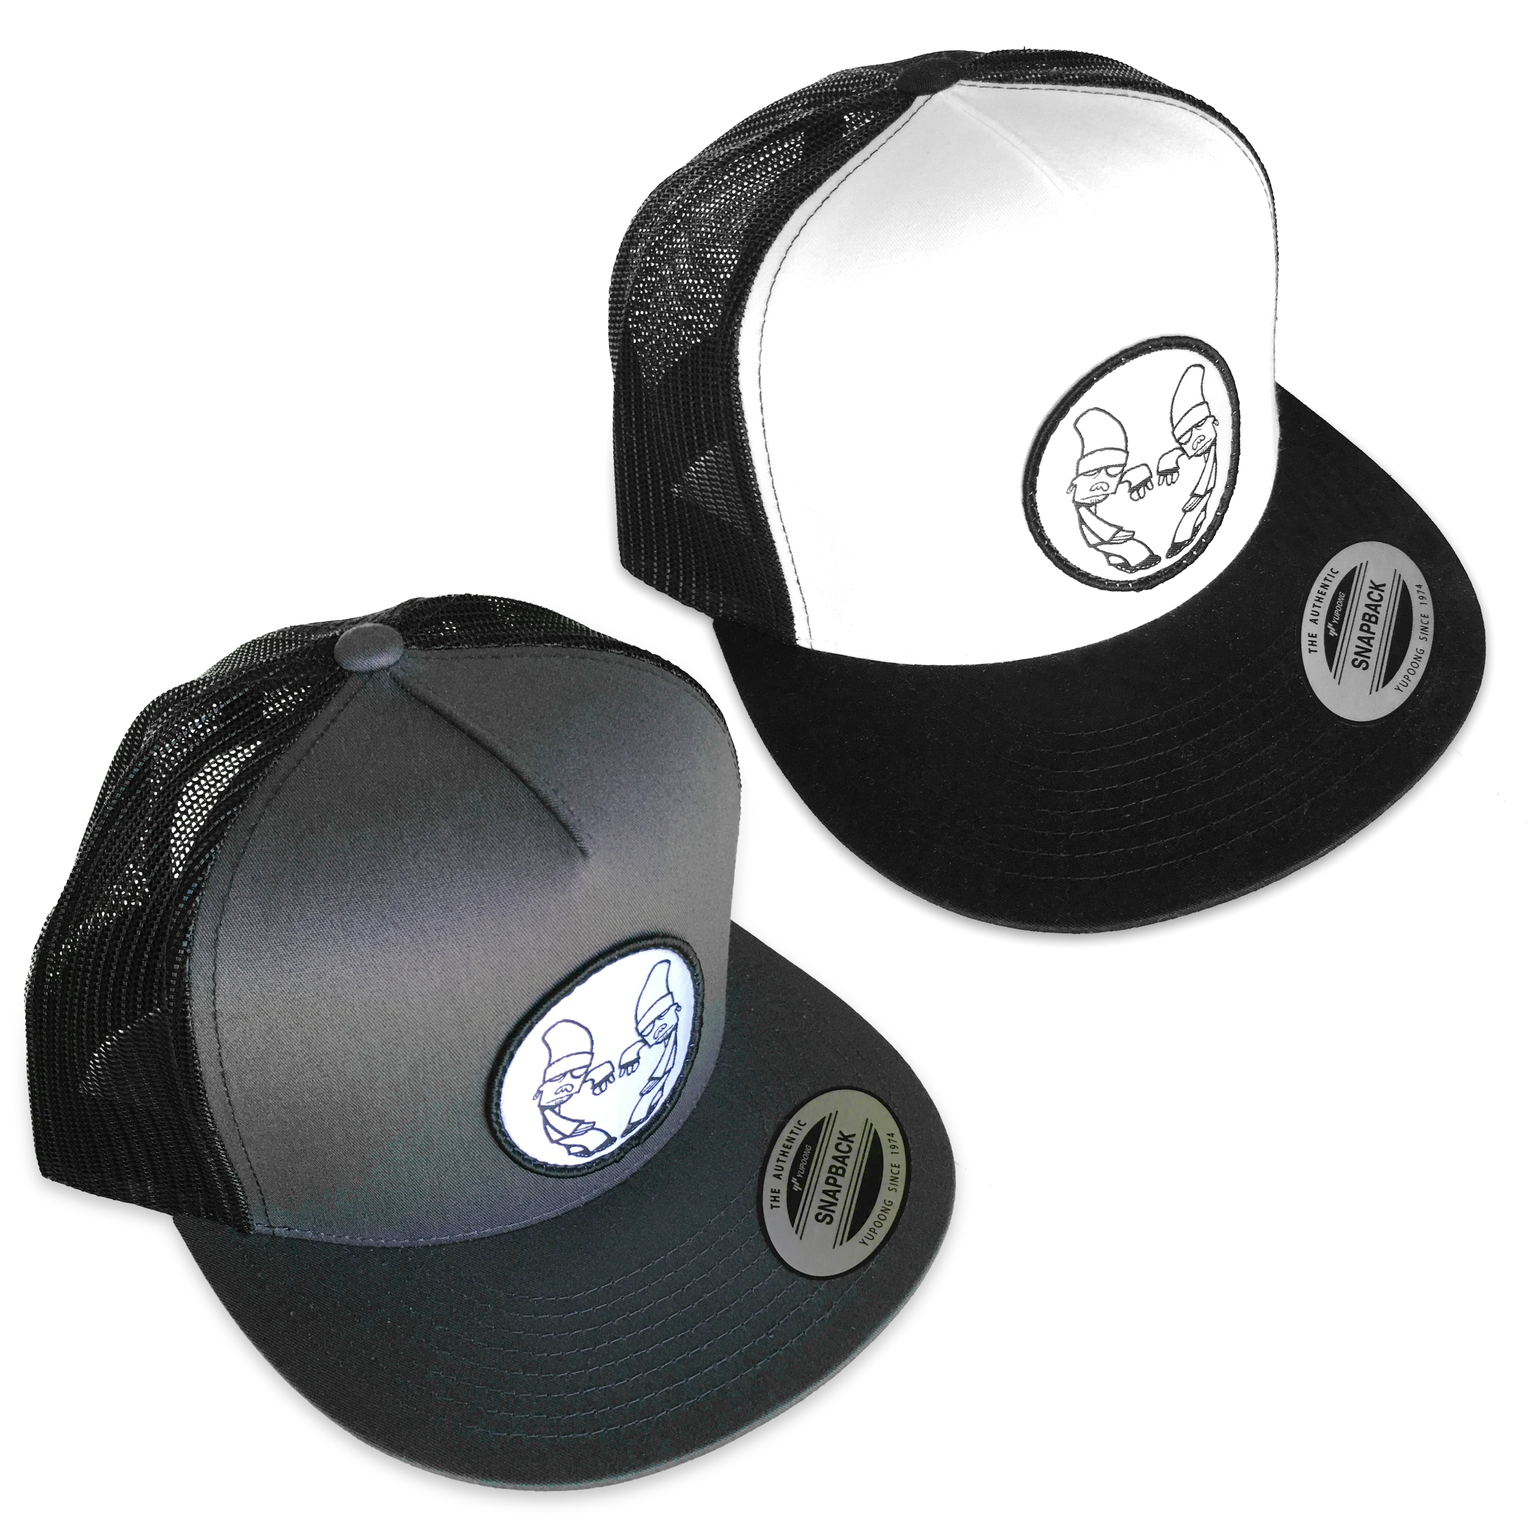 Image of 2 HAT SPECIAL DEAL